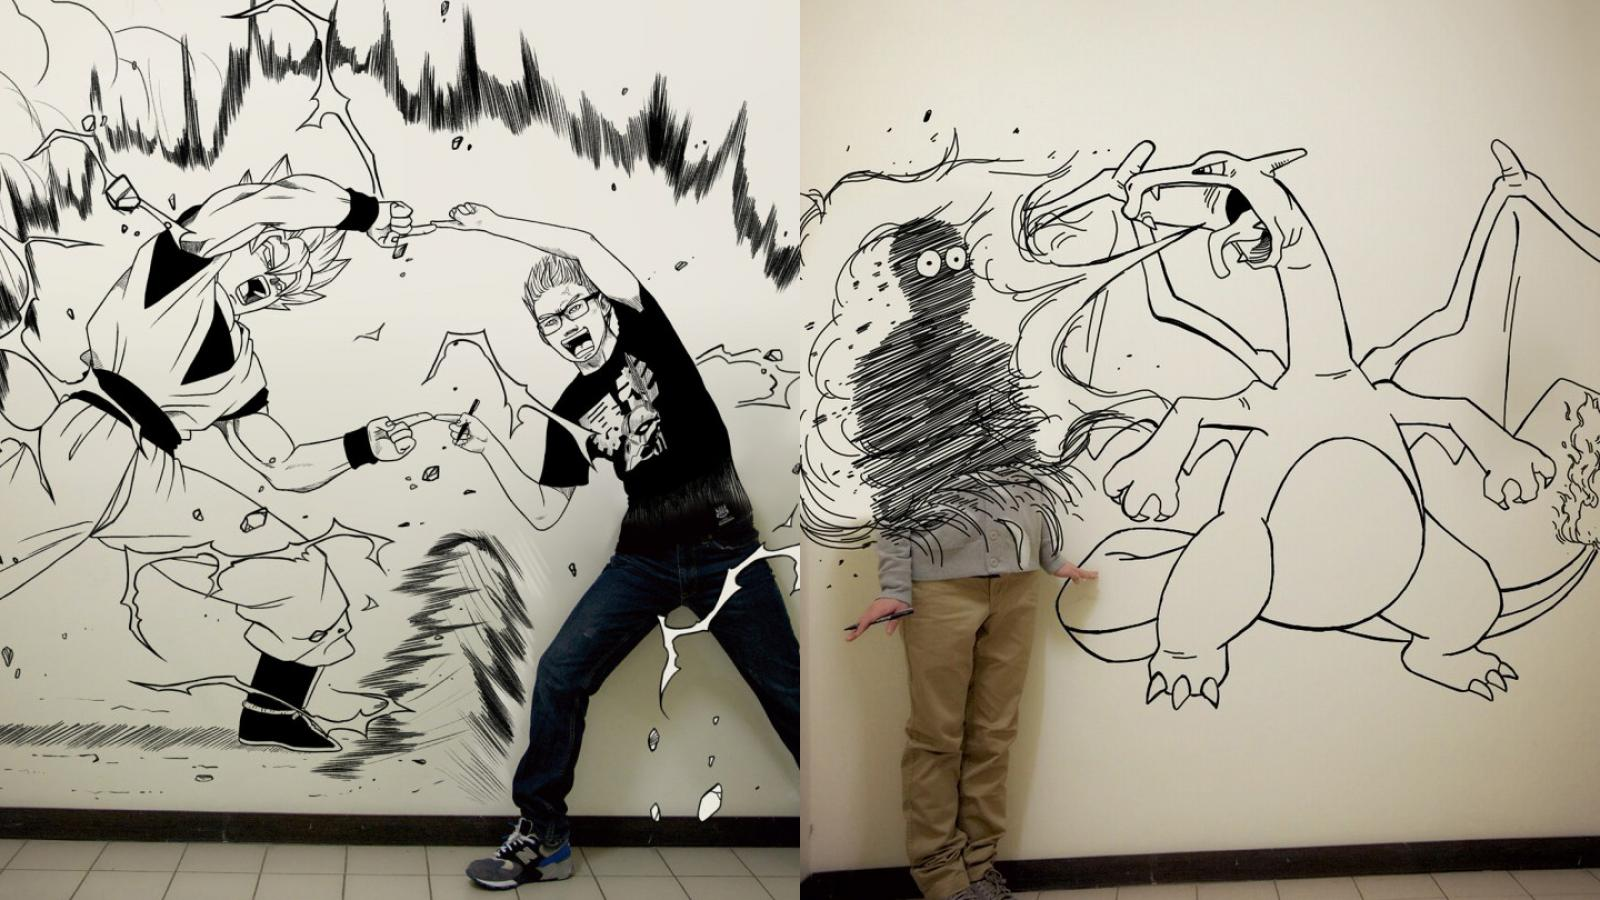 Creative Self-Portrait Drawings by Gaikuo